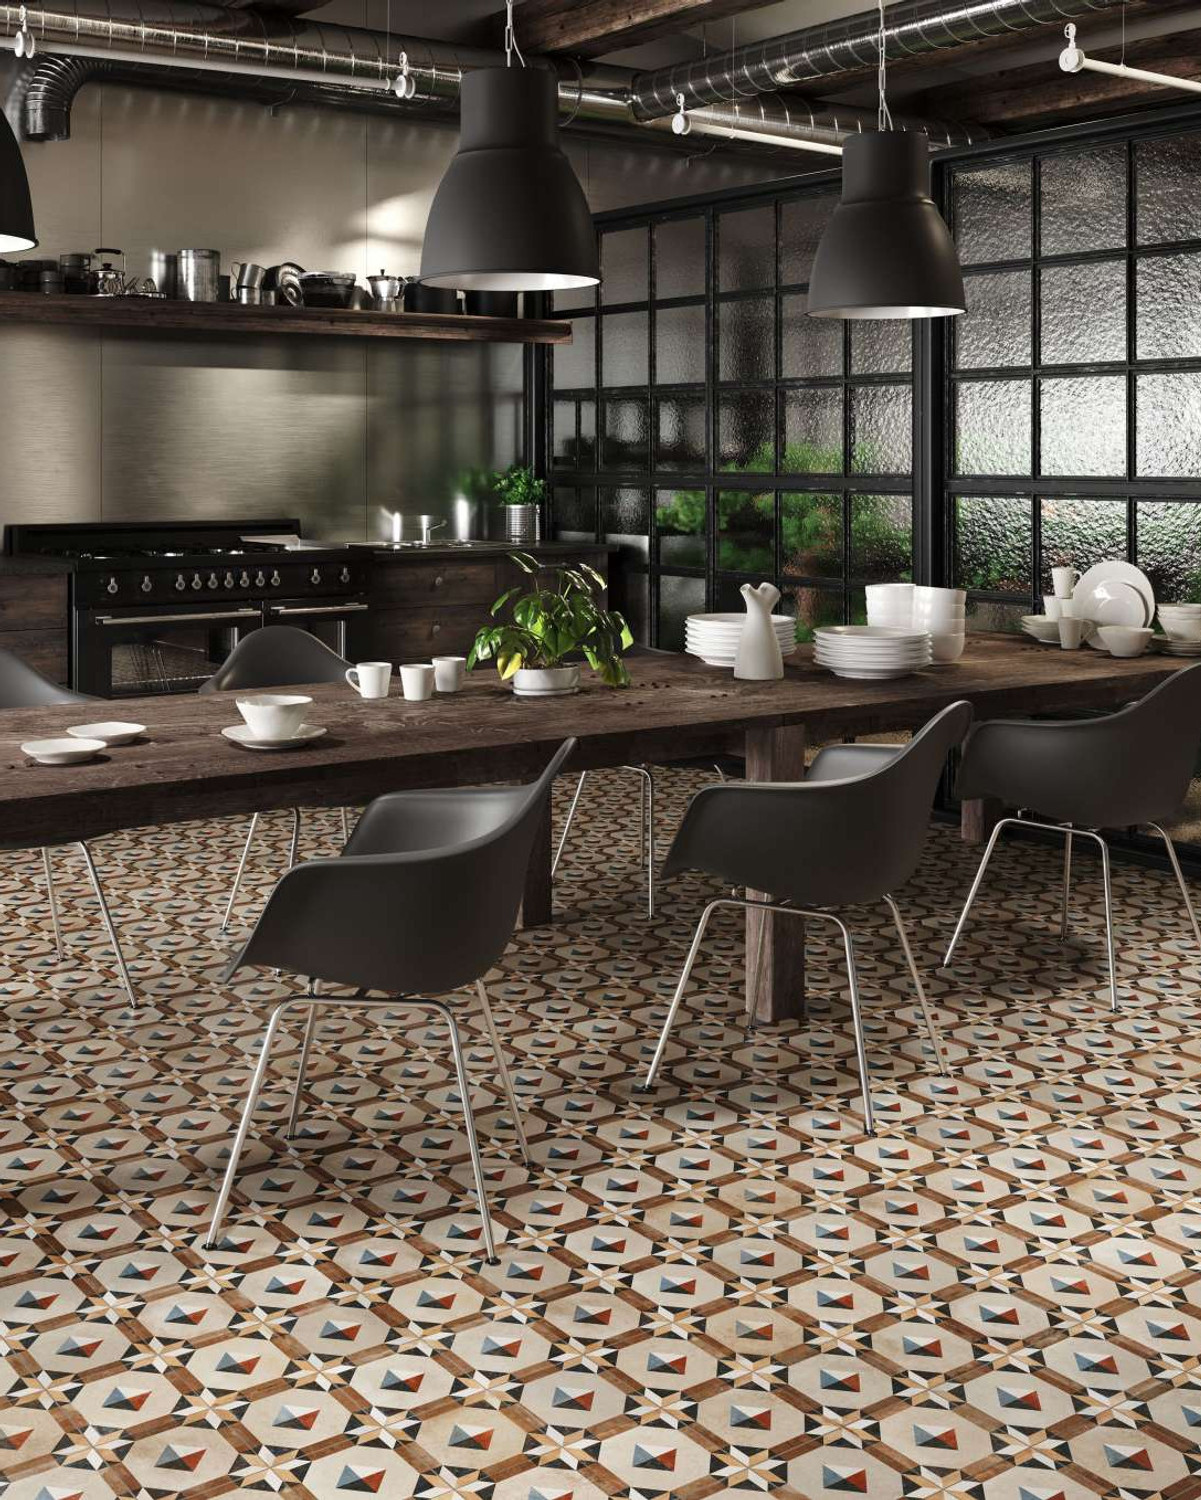 Floor Tile FS Comillas 33x33cm Tiles Vintage Kitchen Bath